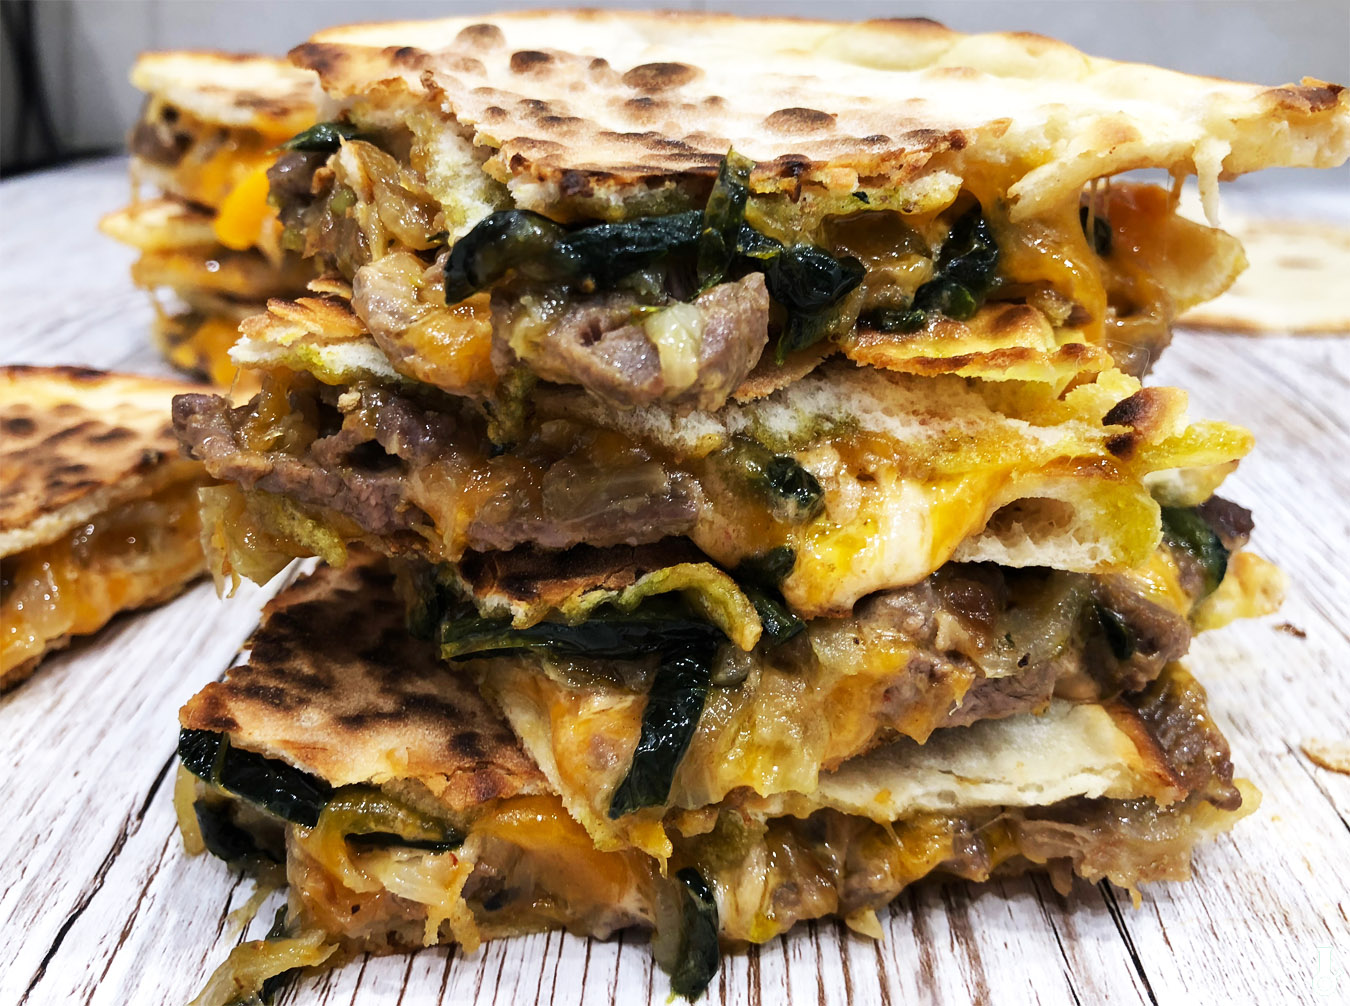 https://www.stonerchef.pl/wp-content/uploads/2018/04/zblizenie-na-quesadille-philly-cheese-steak.jpg